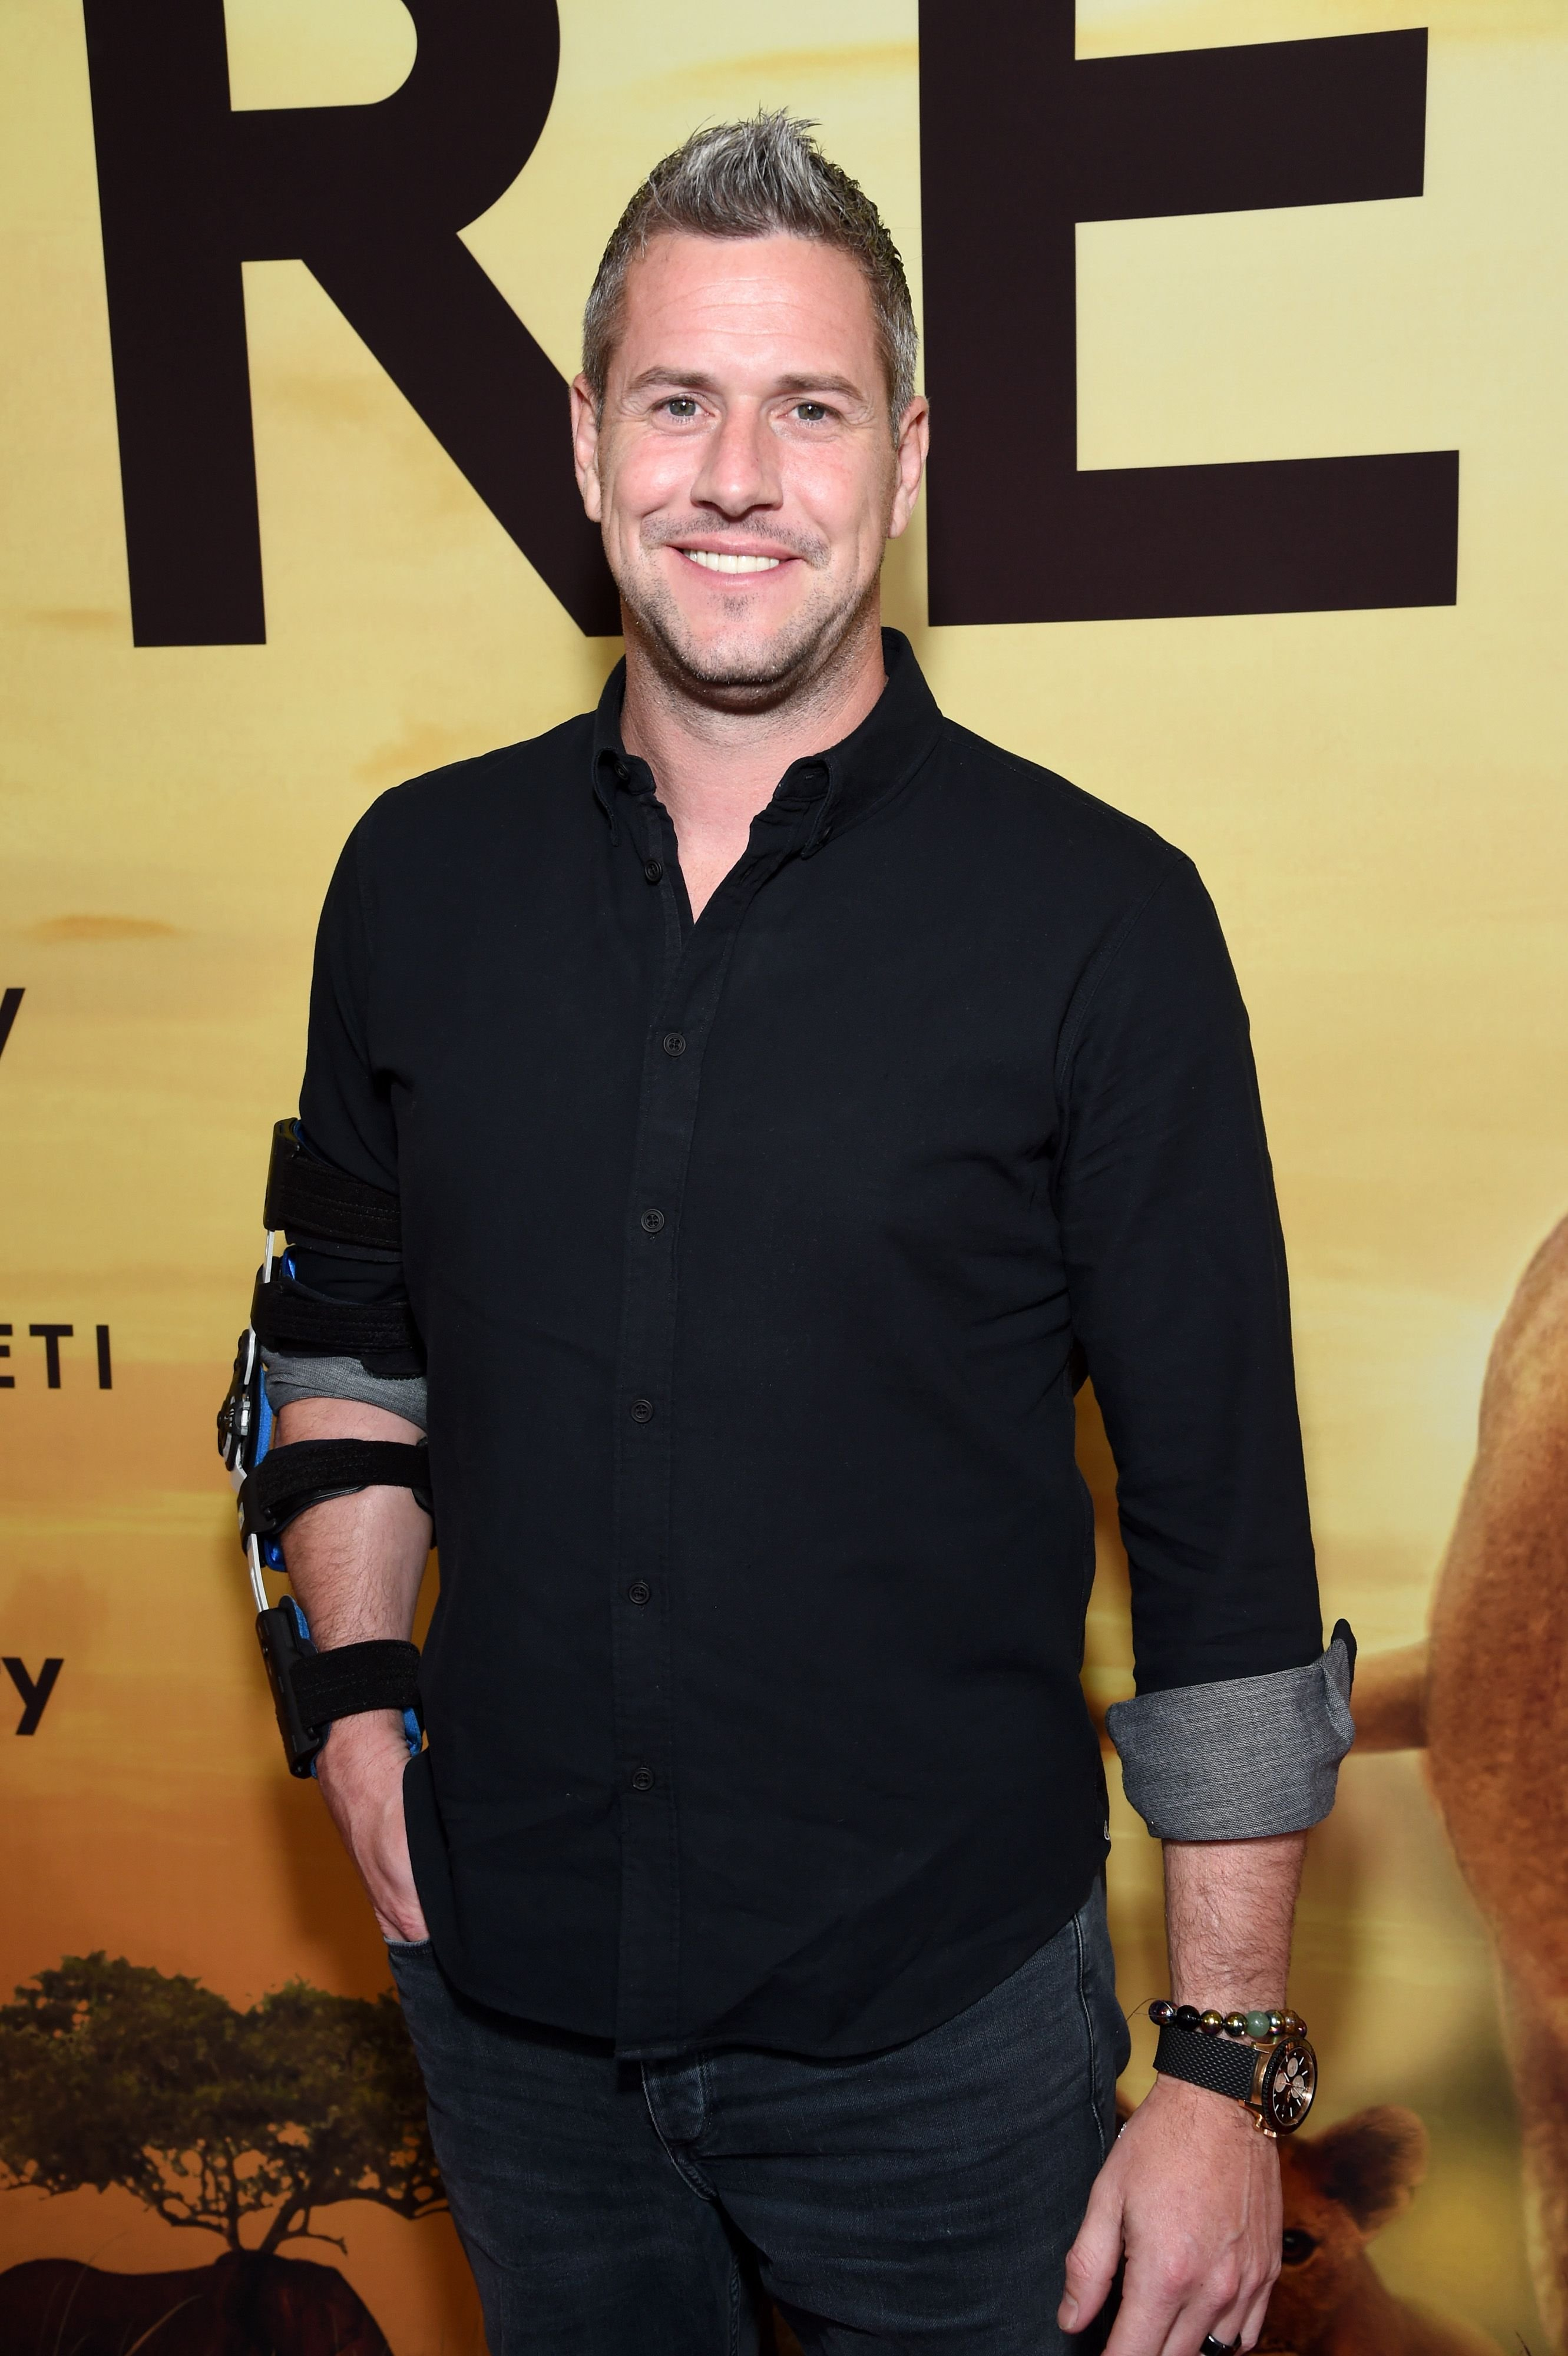 """Ant Anstead at Discovery's """"Serengeti"""" premiere at Wallis Annenberg Center for the Performing Arts on July 23, 2019 in Beverly Hills, California 